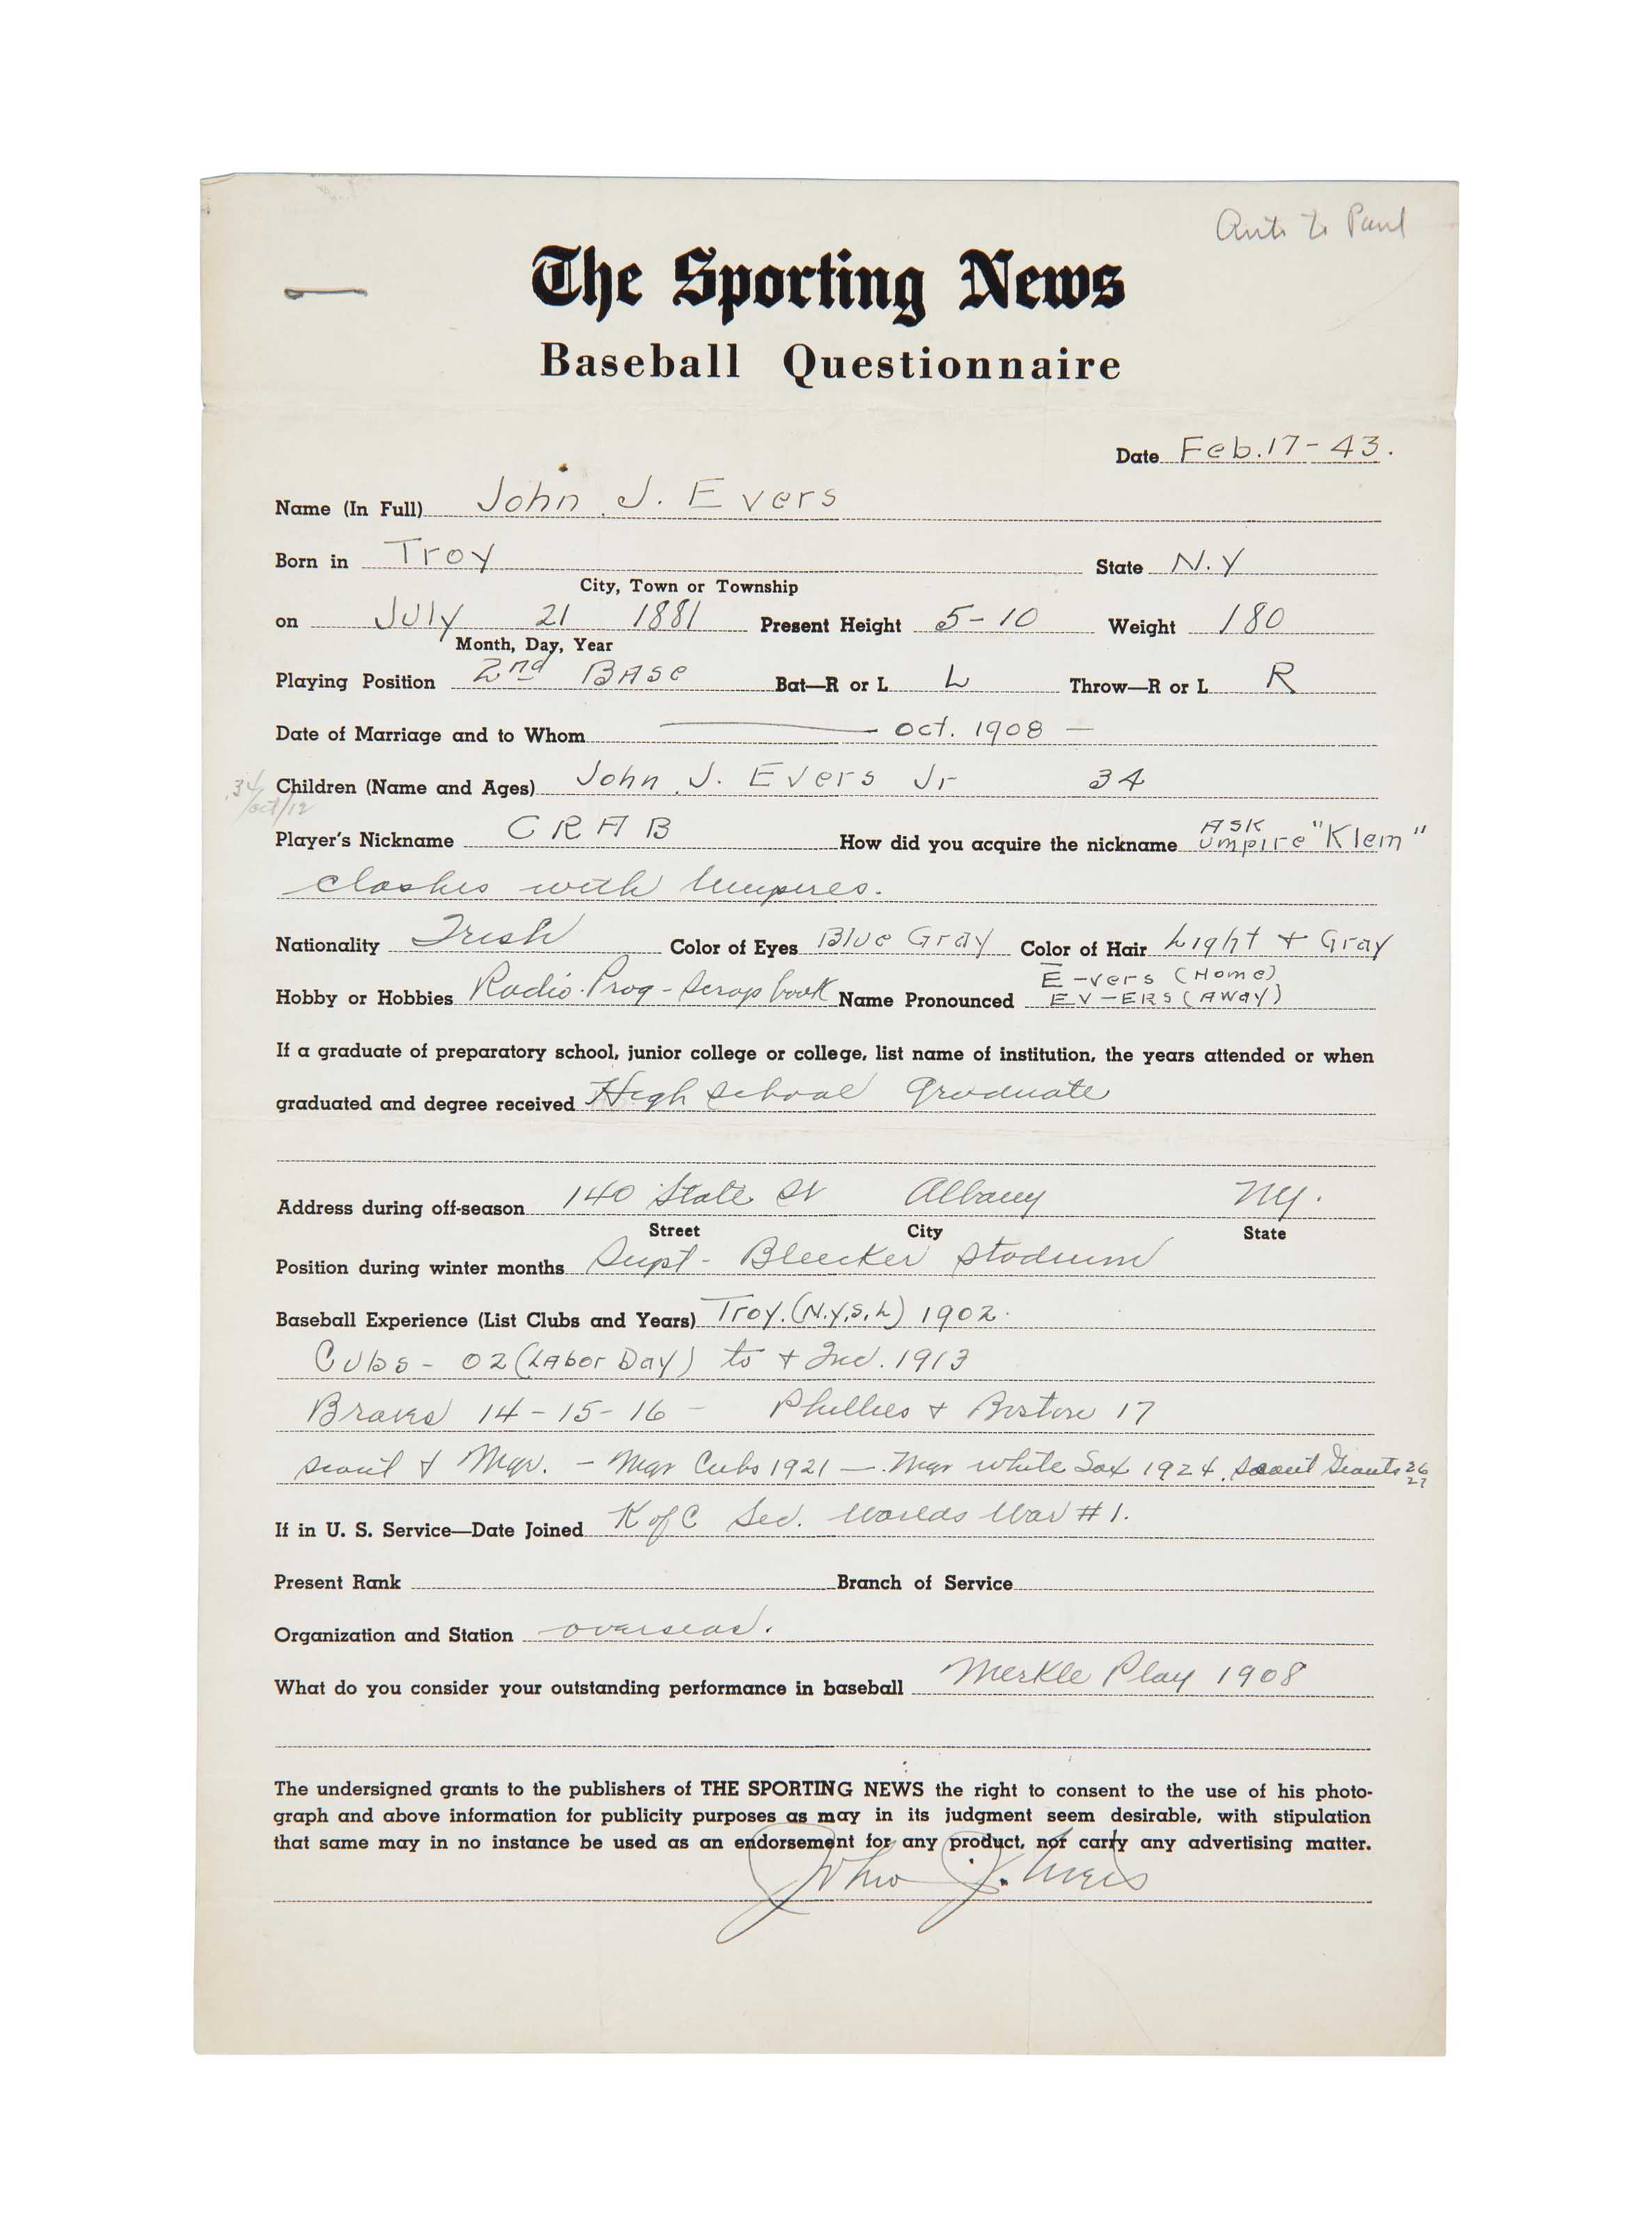 JOHNNY EVERS SIGNED QUESTIONNA